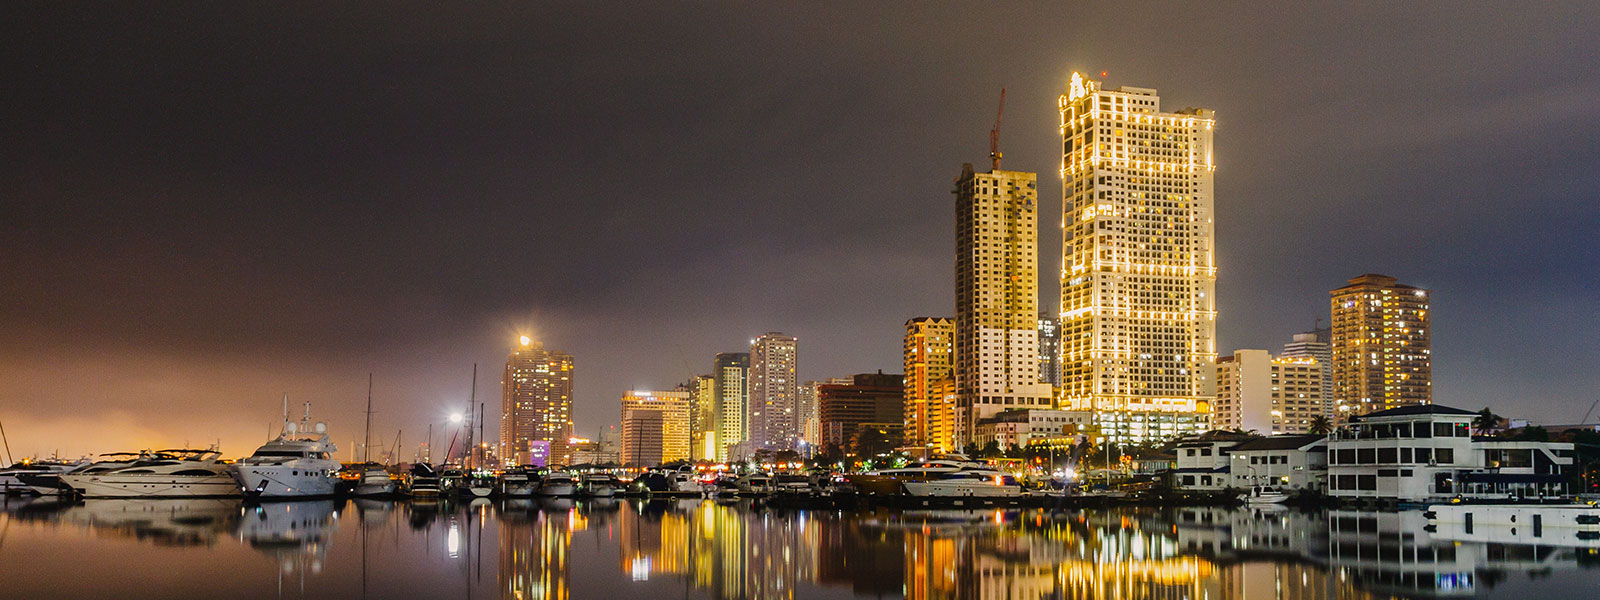 High-rise buildings lit up at night on a harbor shore